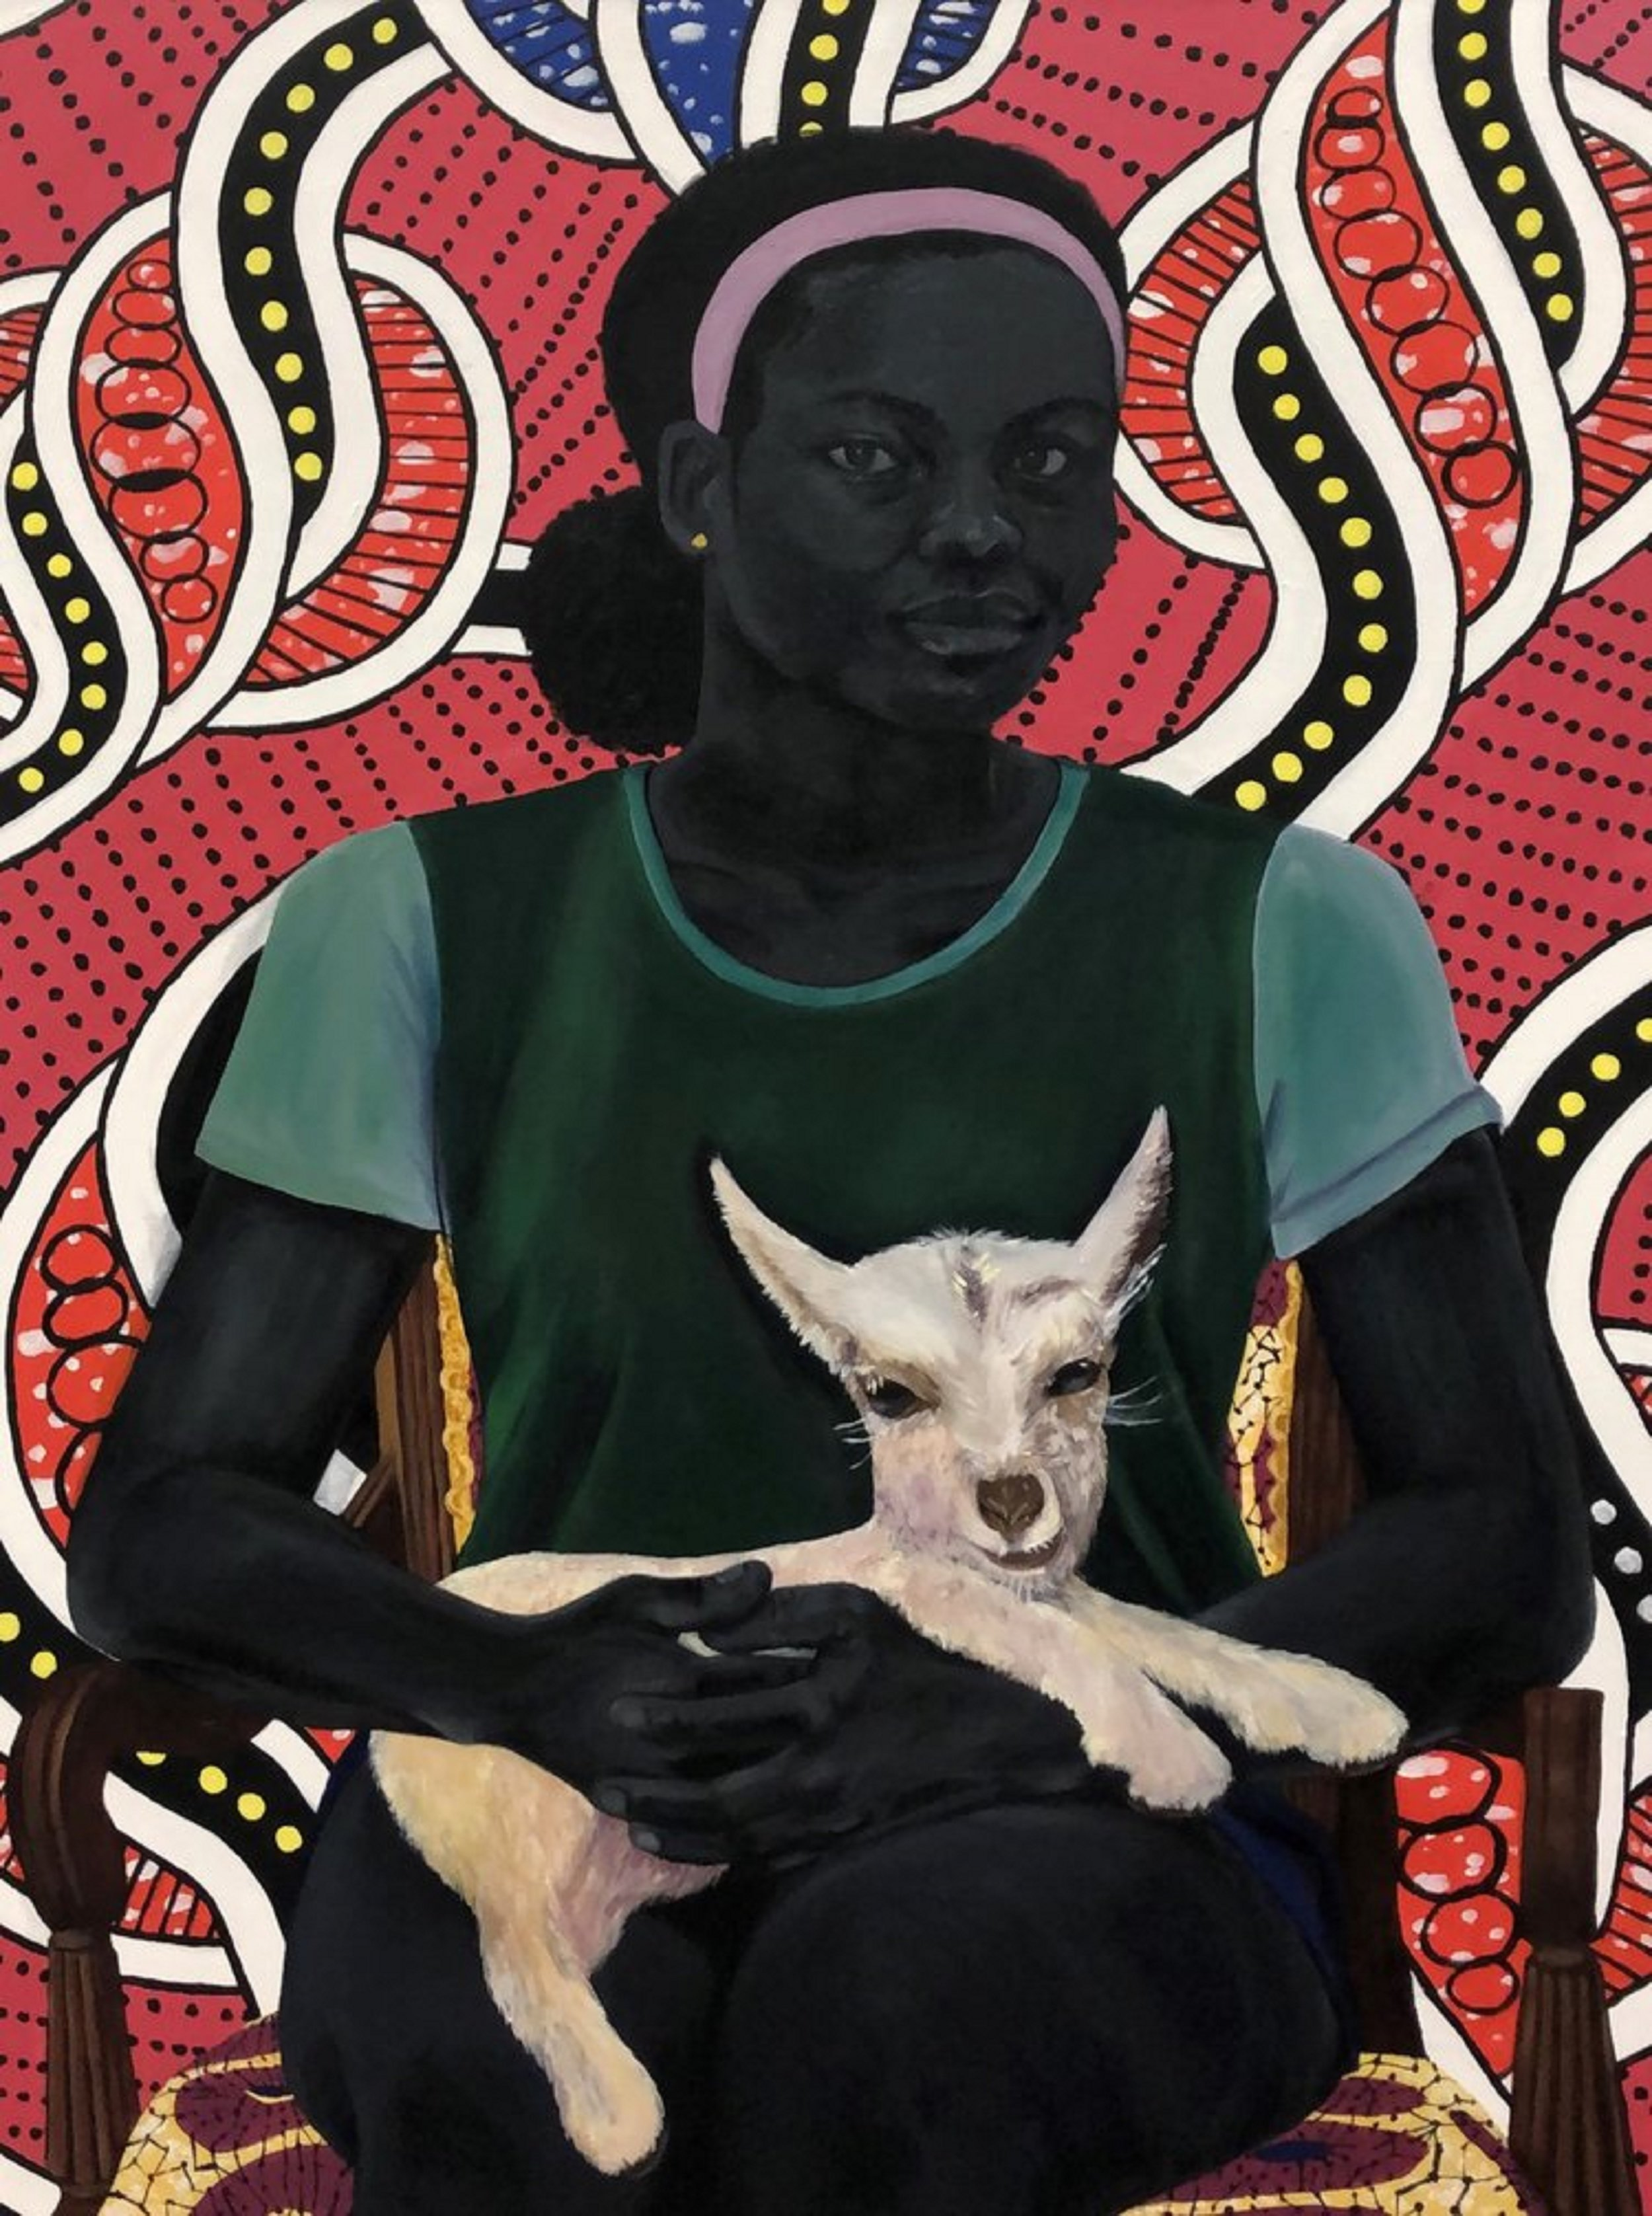 Woman Holding a Goat, 2018  oil and acrylic on canvas  36 x 48 inches